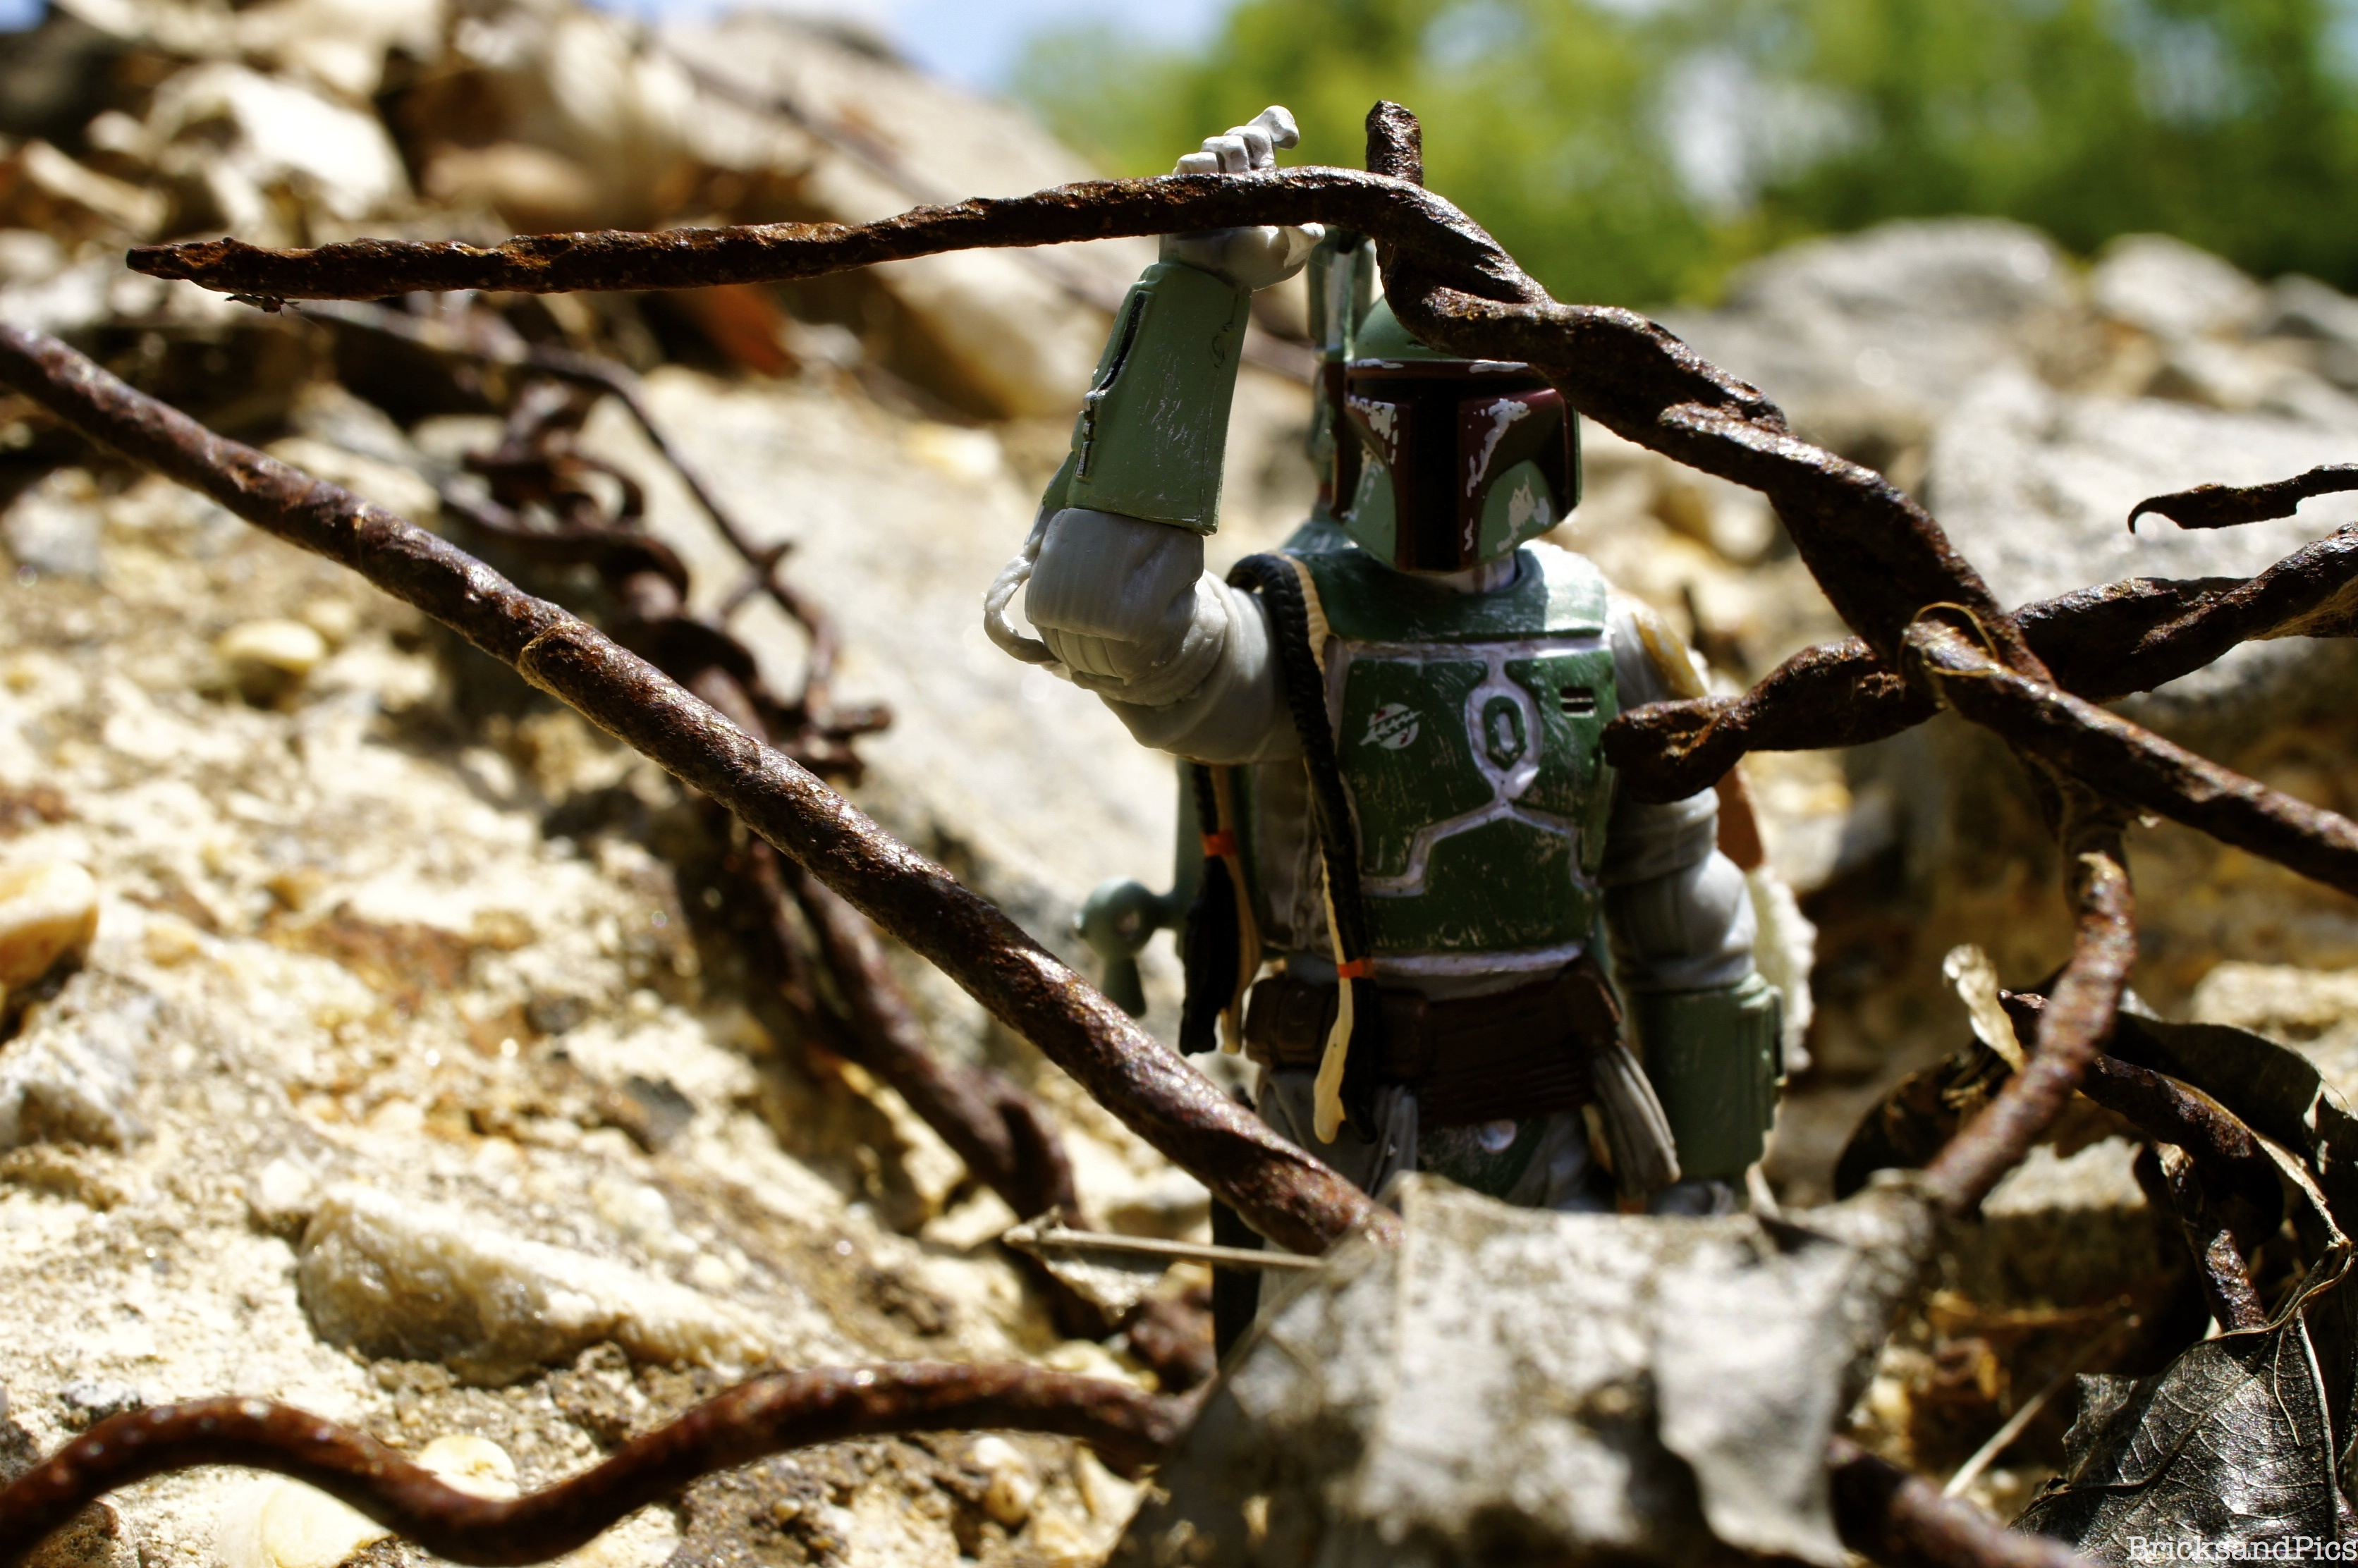 Boba out on the hunt….